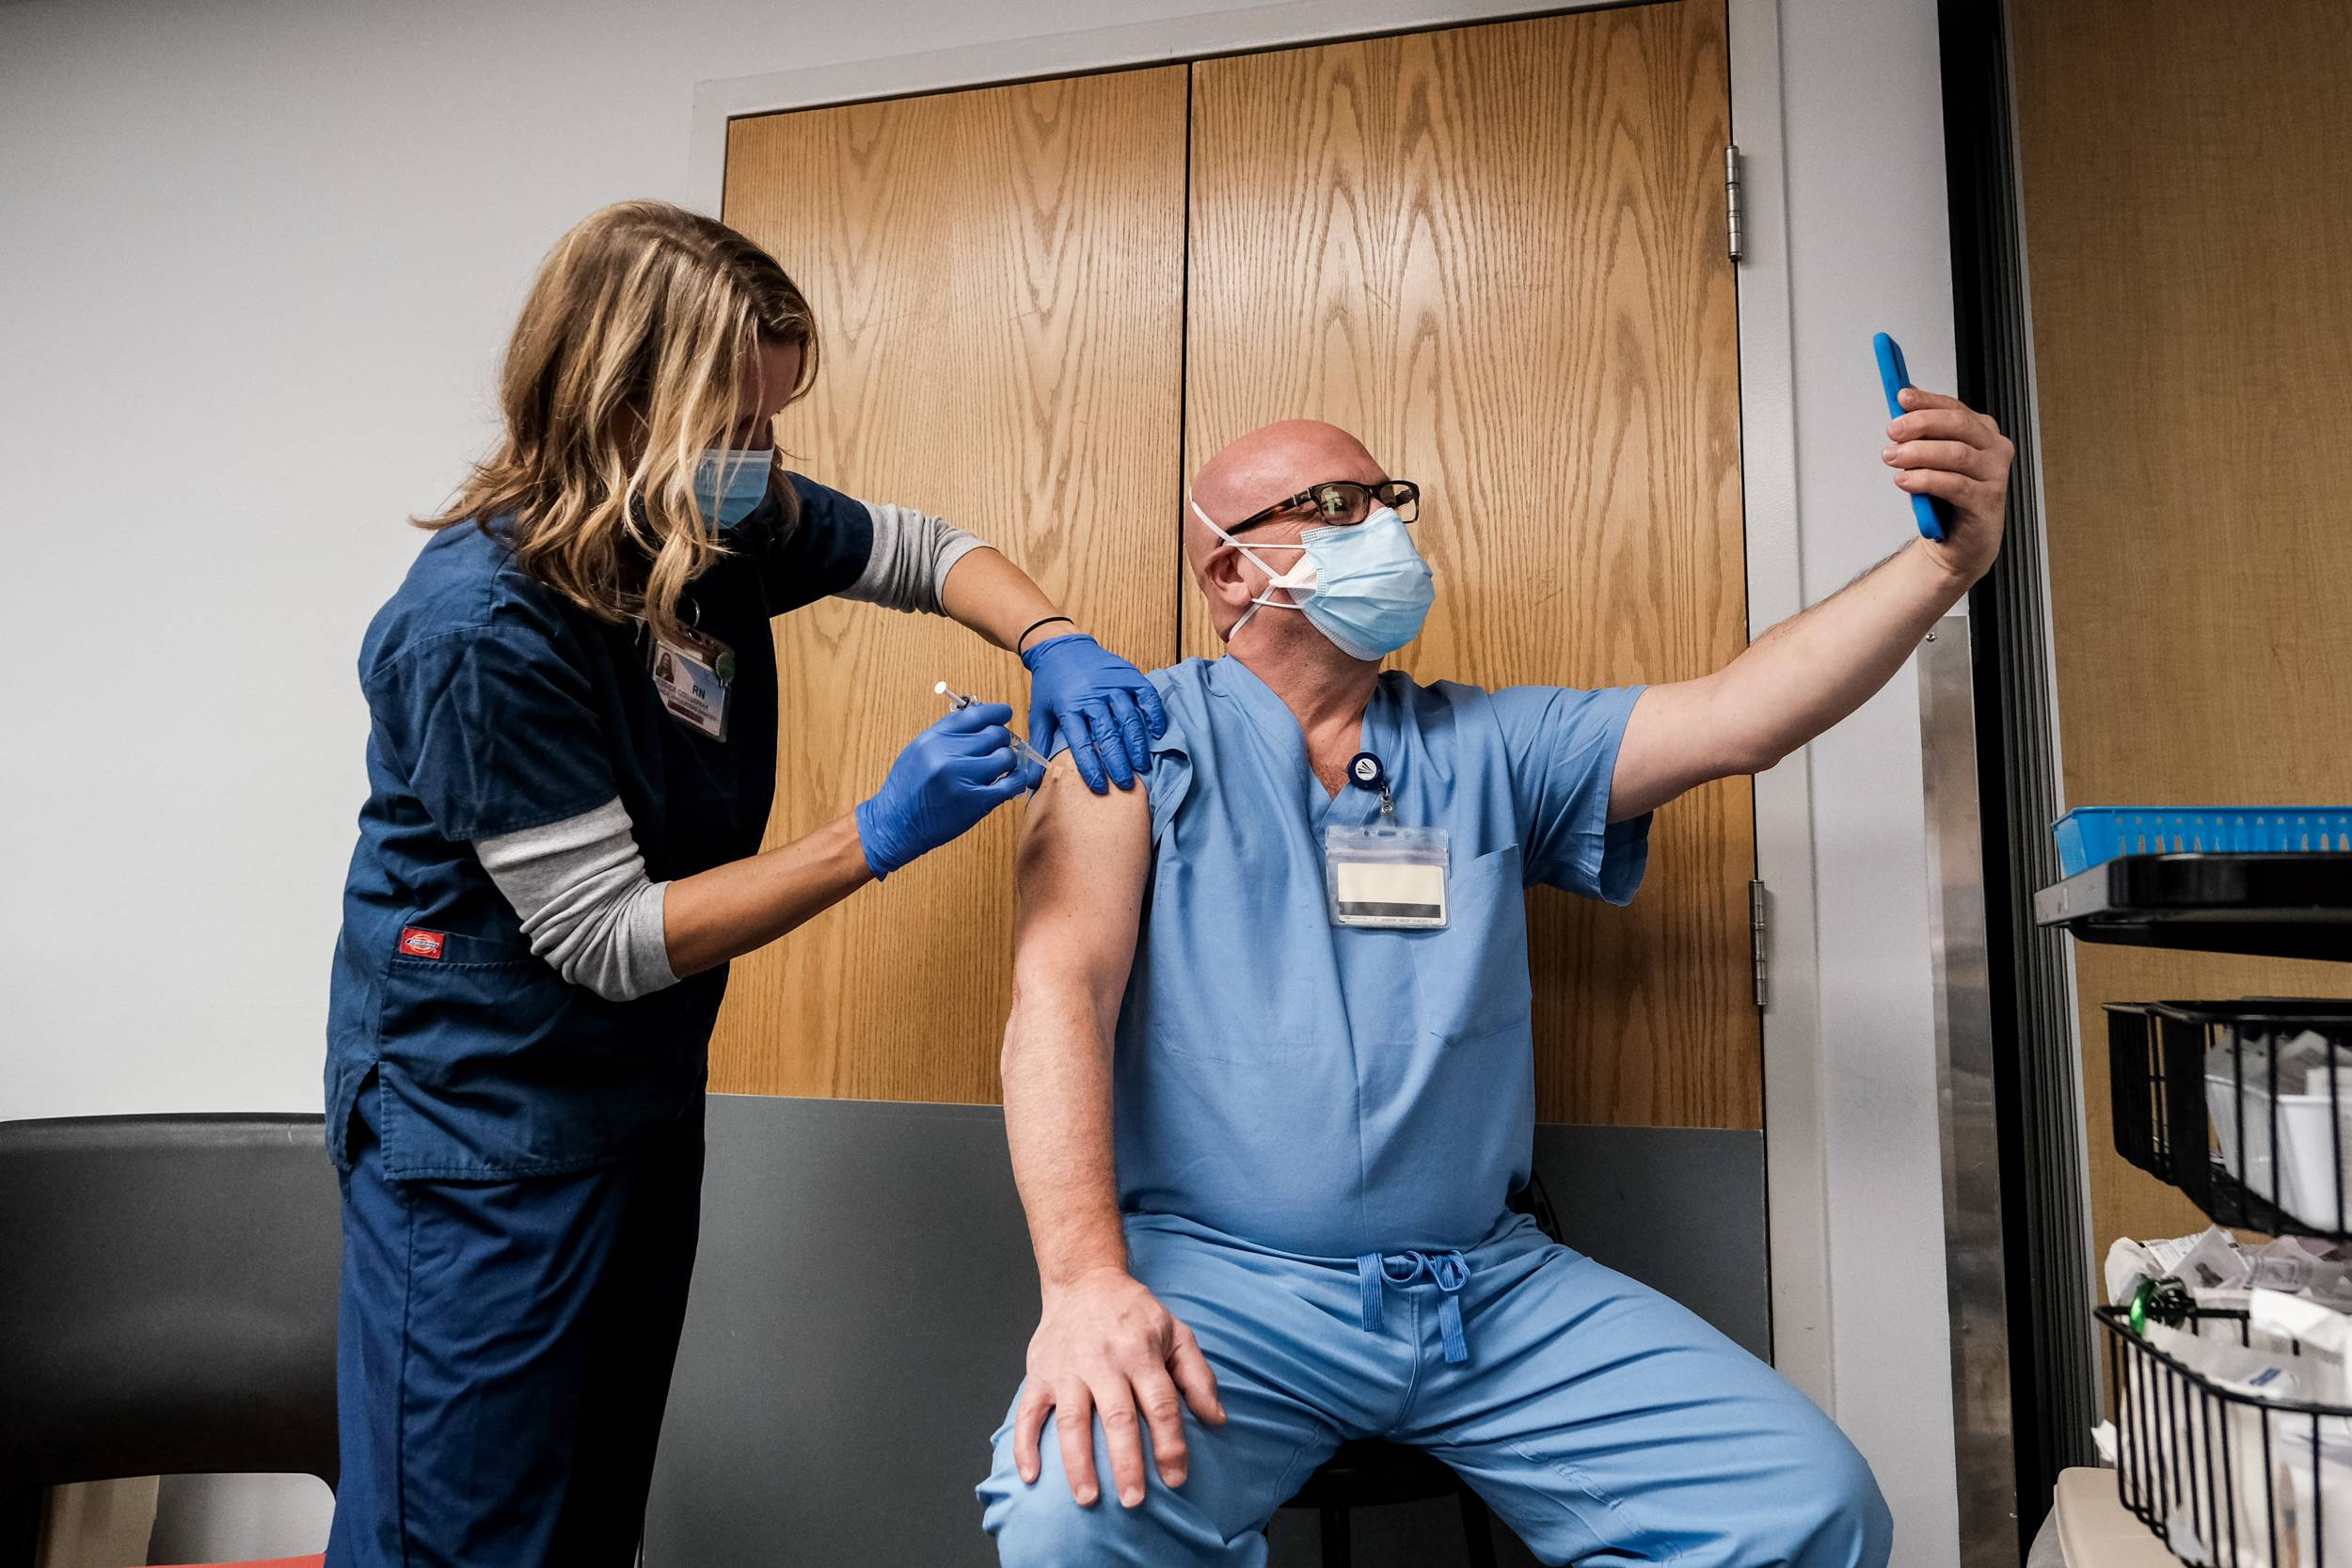 A health care worker makes a selfie while receiving a Pfizer-BioNTech COVID-19 vaccine at Virginia Hospital Center in Arlington on Wednesday. | MICHAEL A. MCCOY/THE NEW YORK TIMES